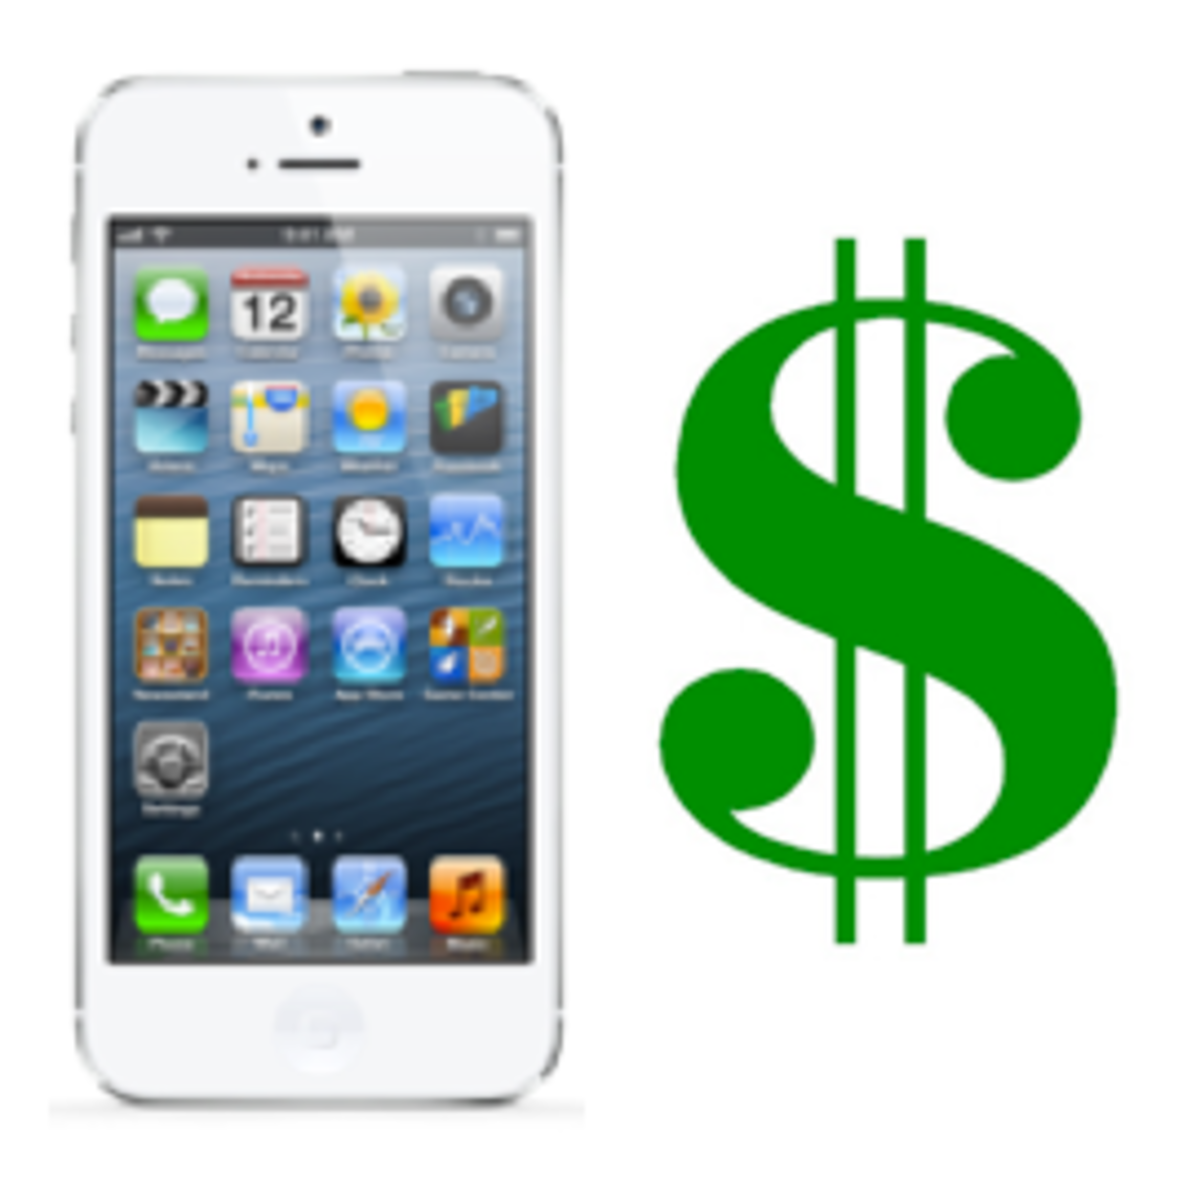 You can earn money with your smartphone by using a few different apps.